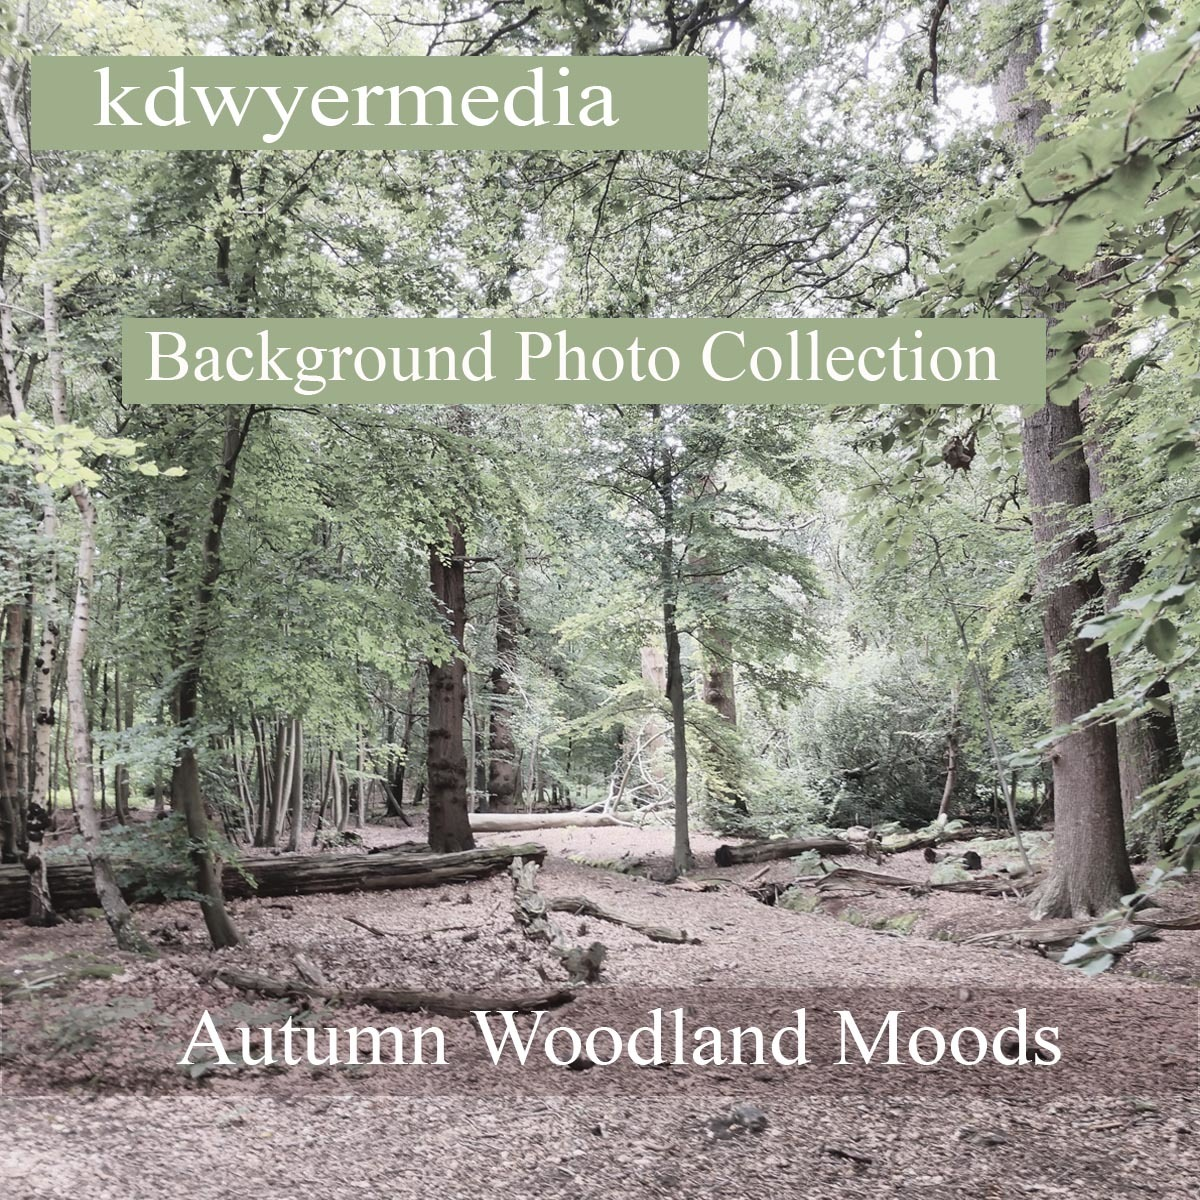 Autumn Woodlands Moods by kdwyermedia